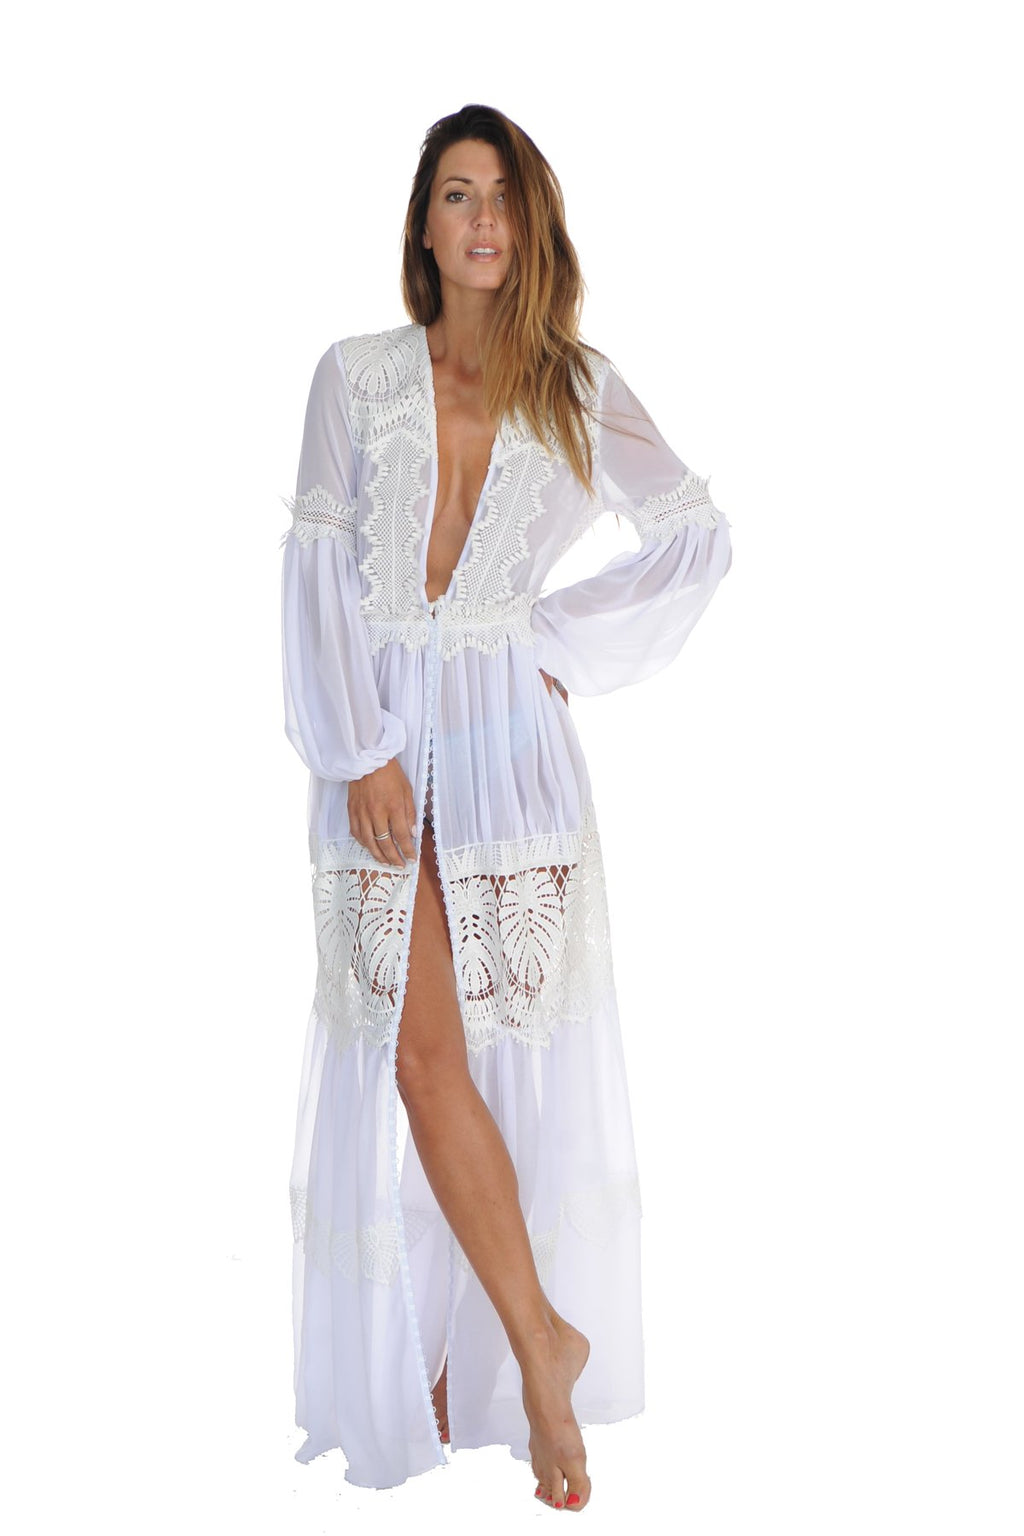 Bridal Blanche Robe